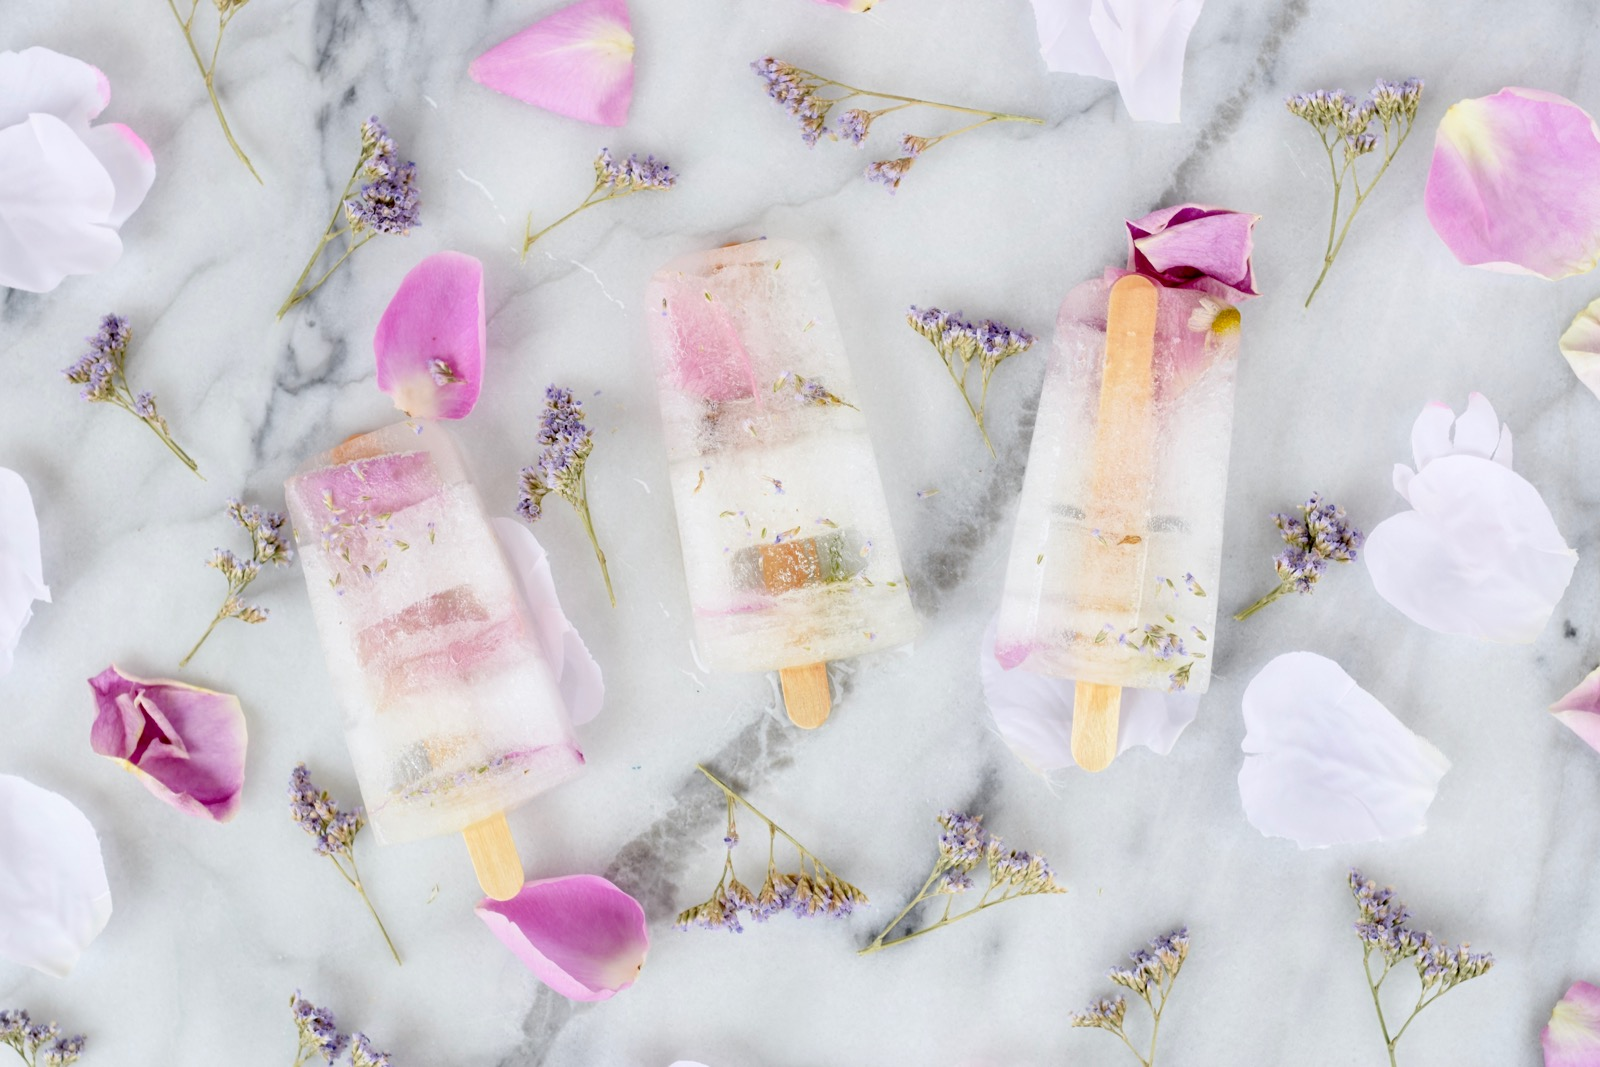 Sparkling Edible Flower Popsicle Recipes